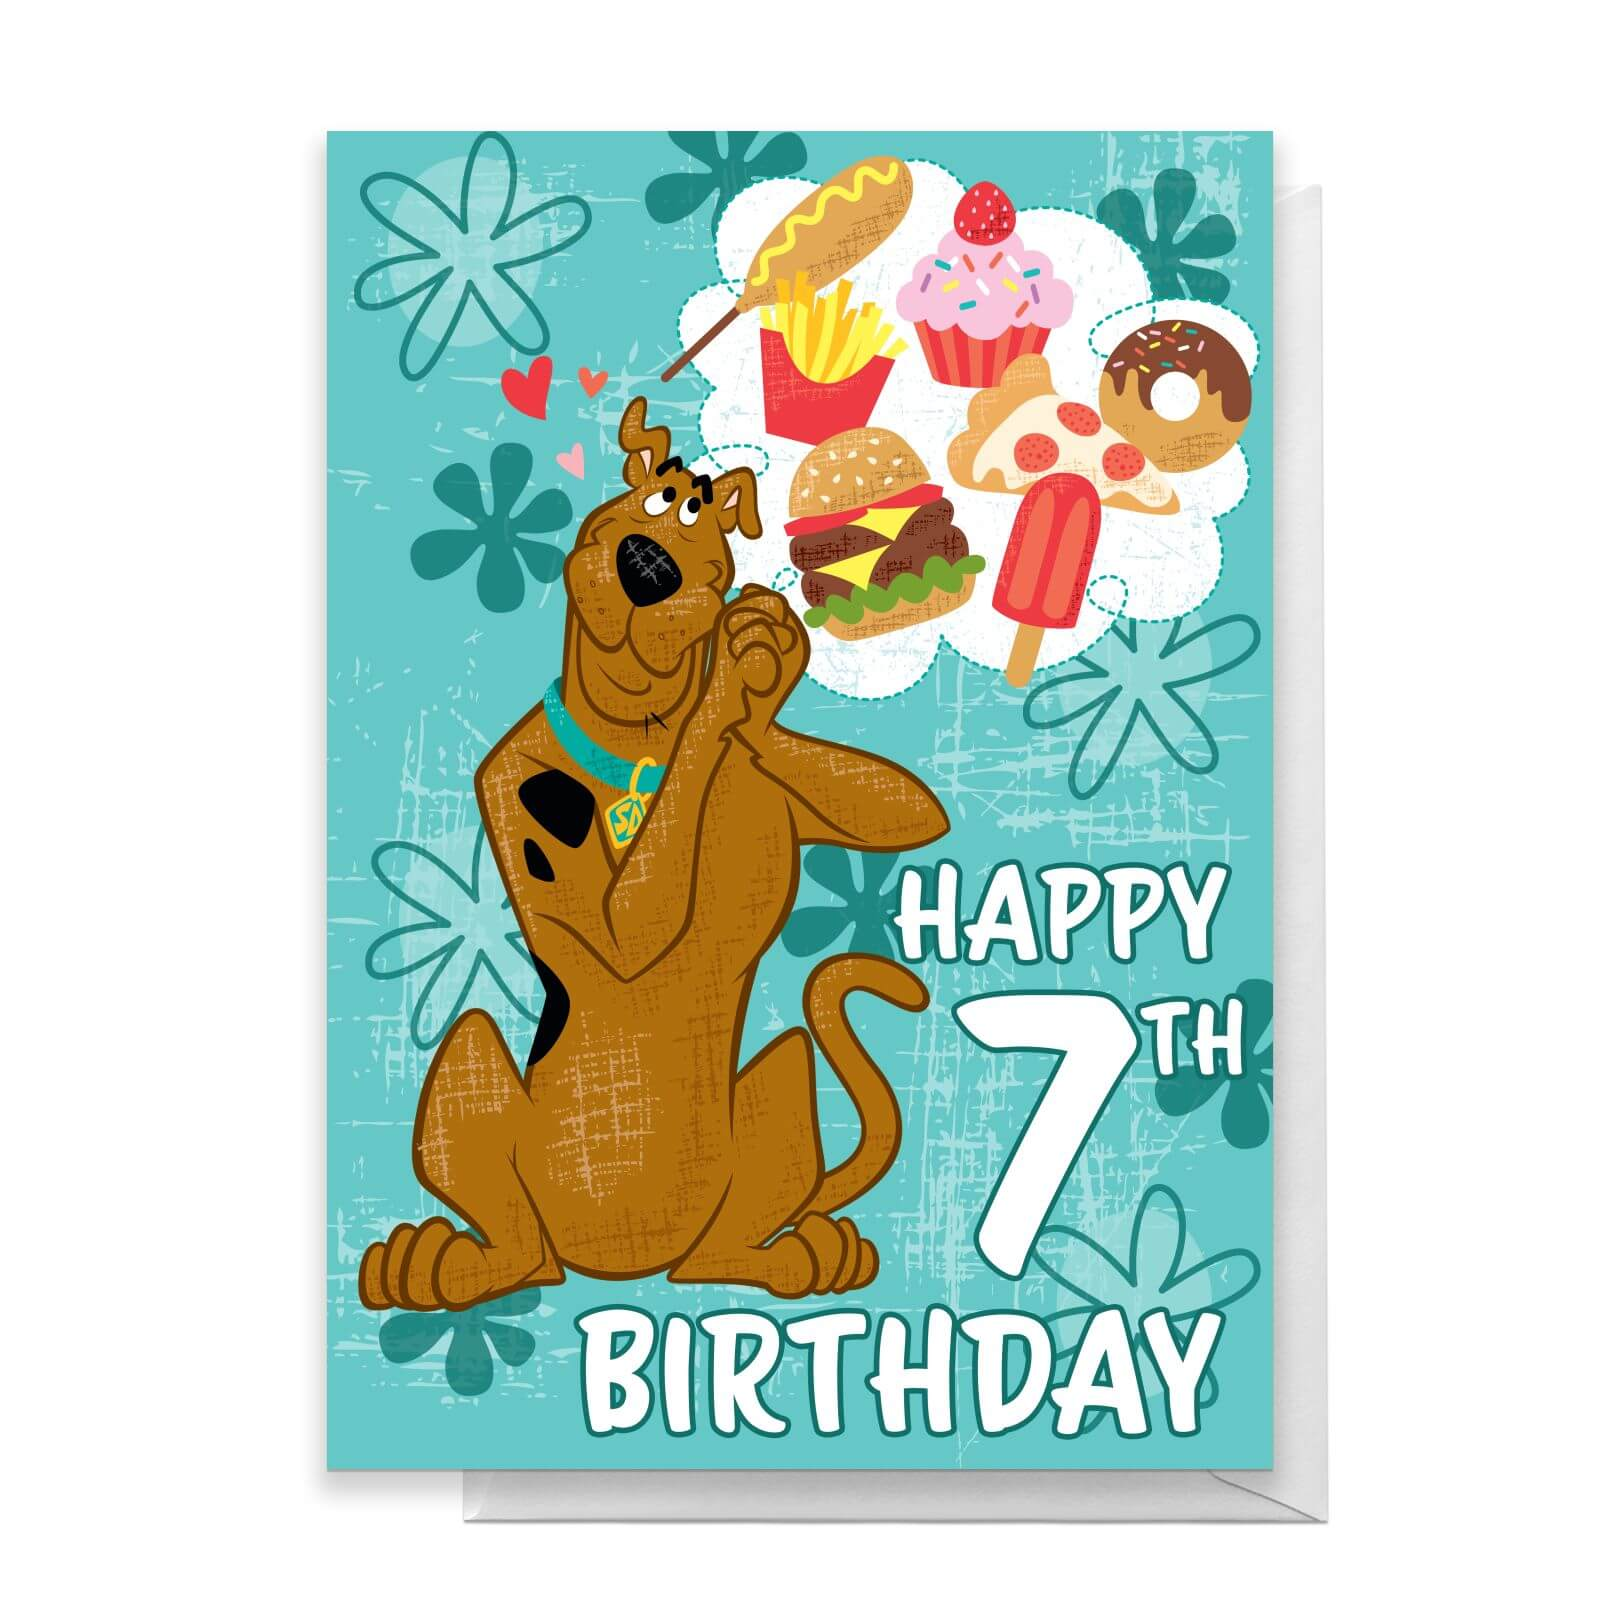 Scooby Doo 7th Birthday Greetings Card - Standard Card de Scooby Doo